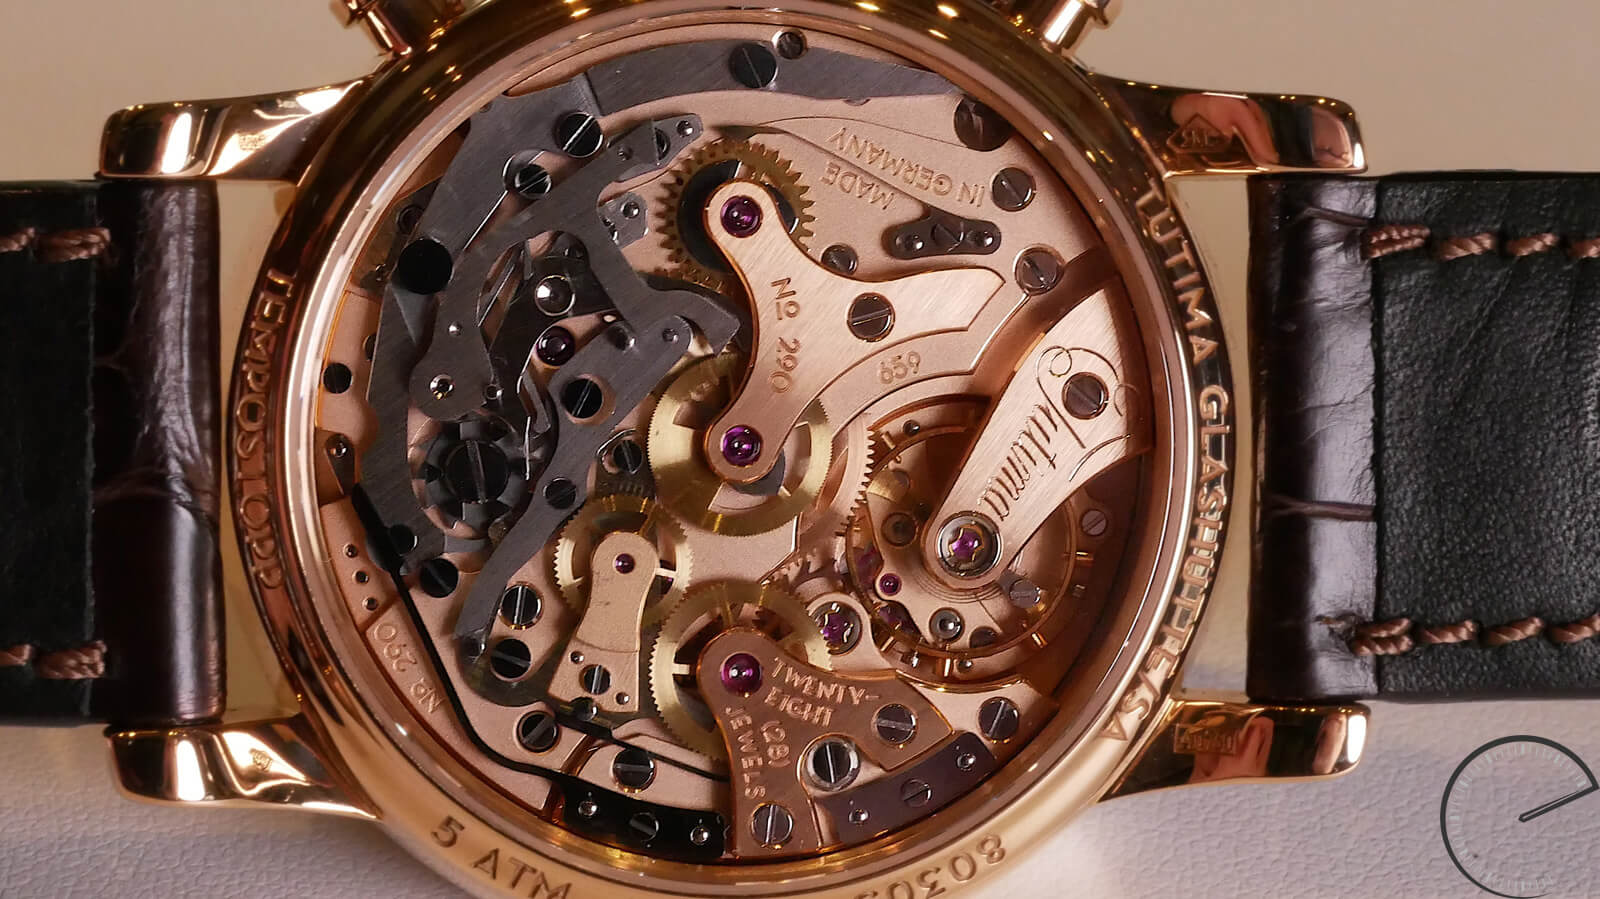 Tutima Tempostopp - fly-back chronograph with hand-wound movement